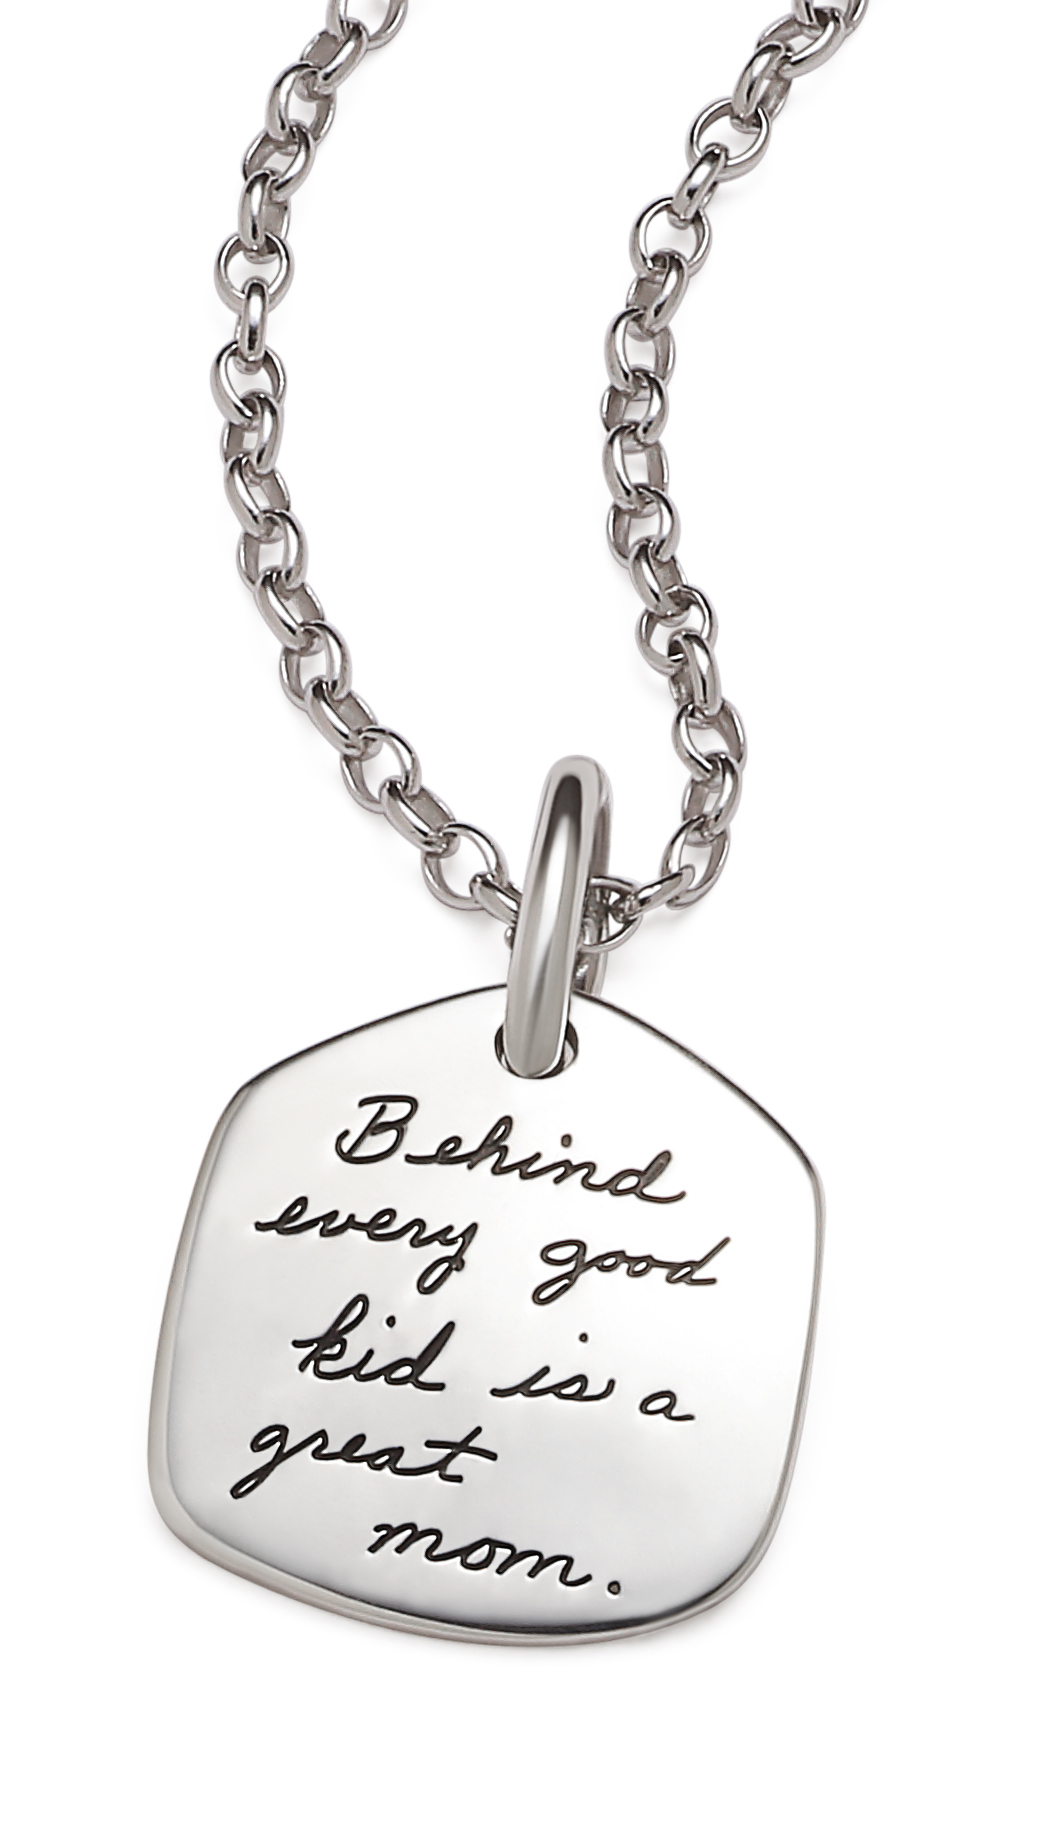 Sterling silver pendant with engraved inspirational quote that reads: Behind every good kid is a great mom.